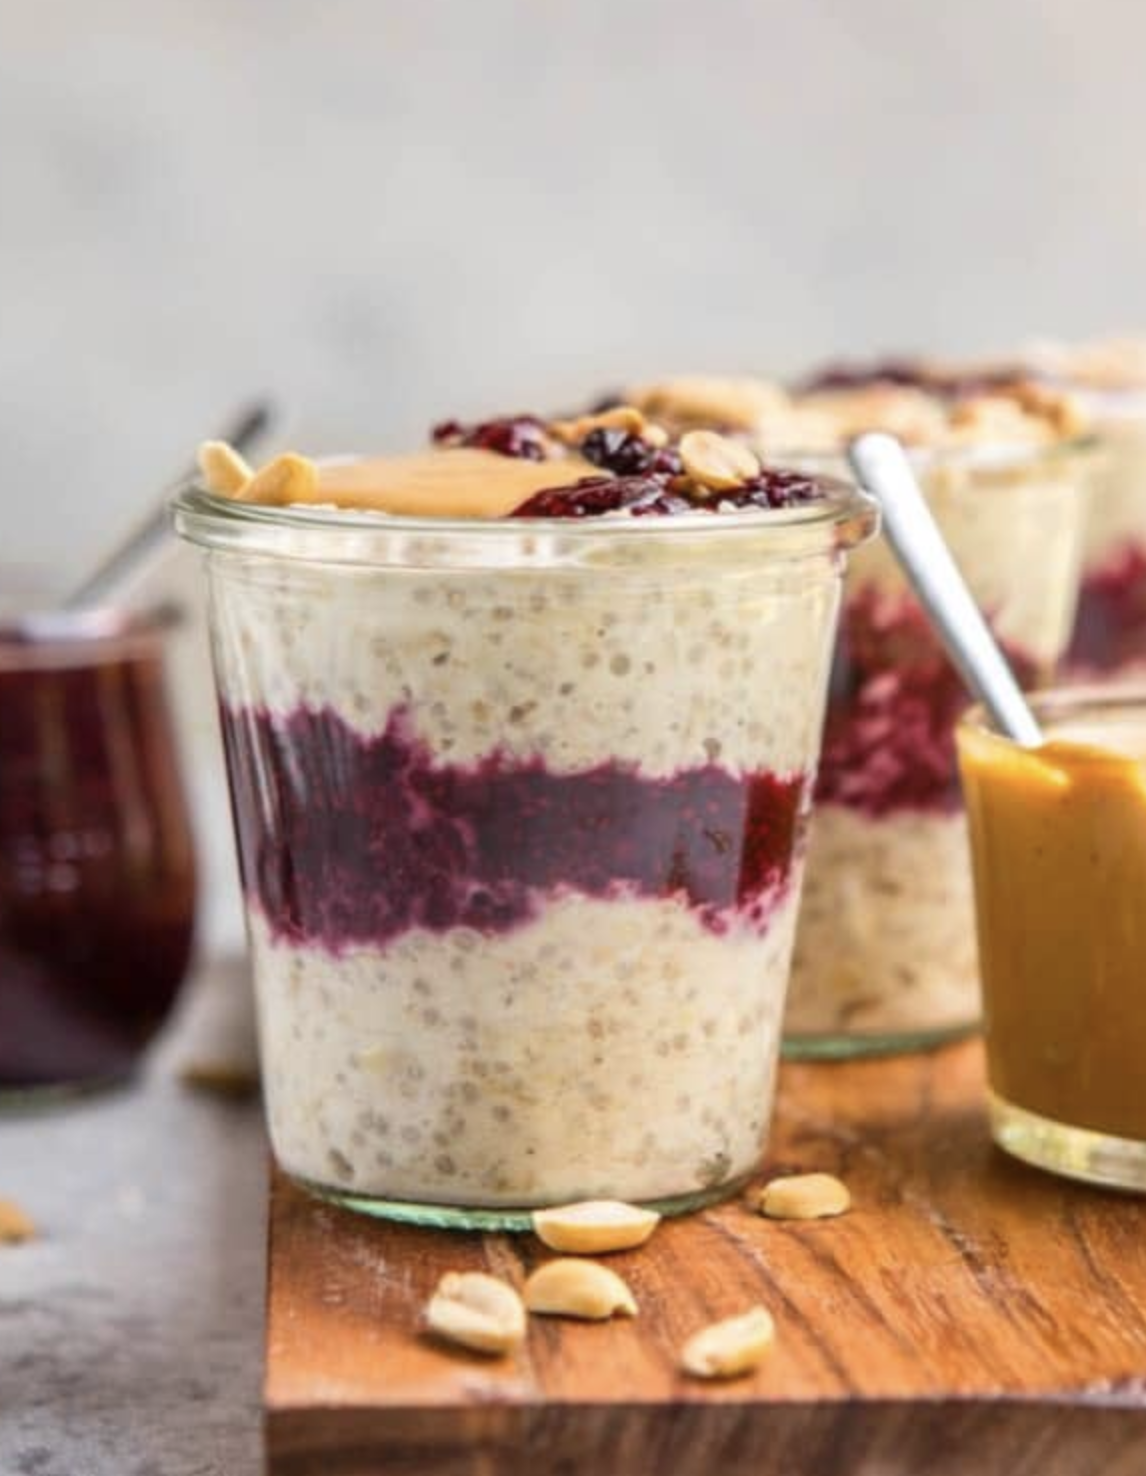 Overnight oats are amazingly simple to make and so healthy. Check out these quick and easy overnight oat recipe ideas for breakfast on the go for those busy mornings.  #overnight #oats #overnightoats #breakfast